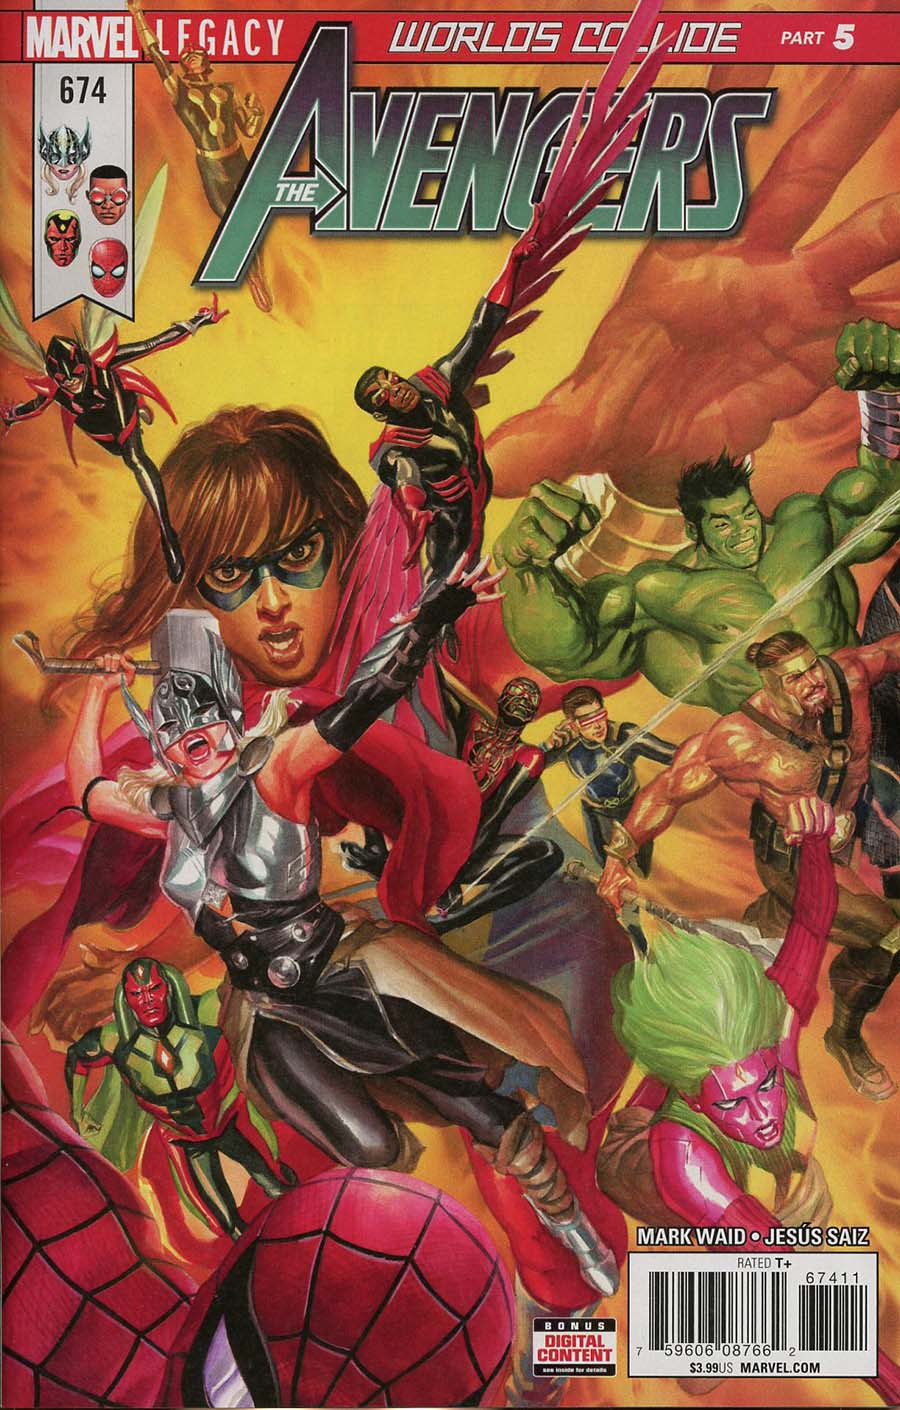 Avengers Vol 6 #674 Cover A Regular Alex Ross Cover (Marvel Legacy Tie-In)